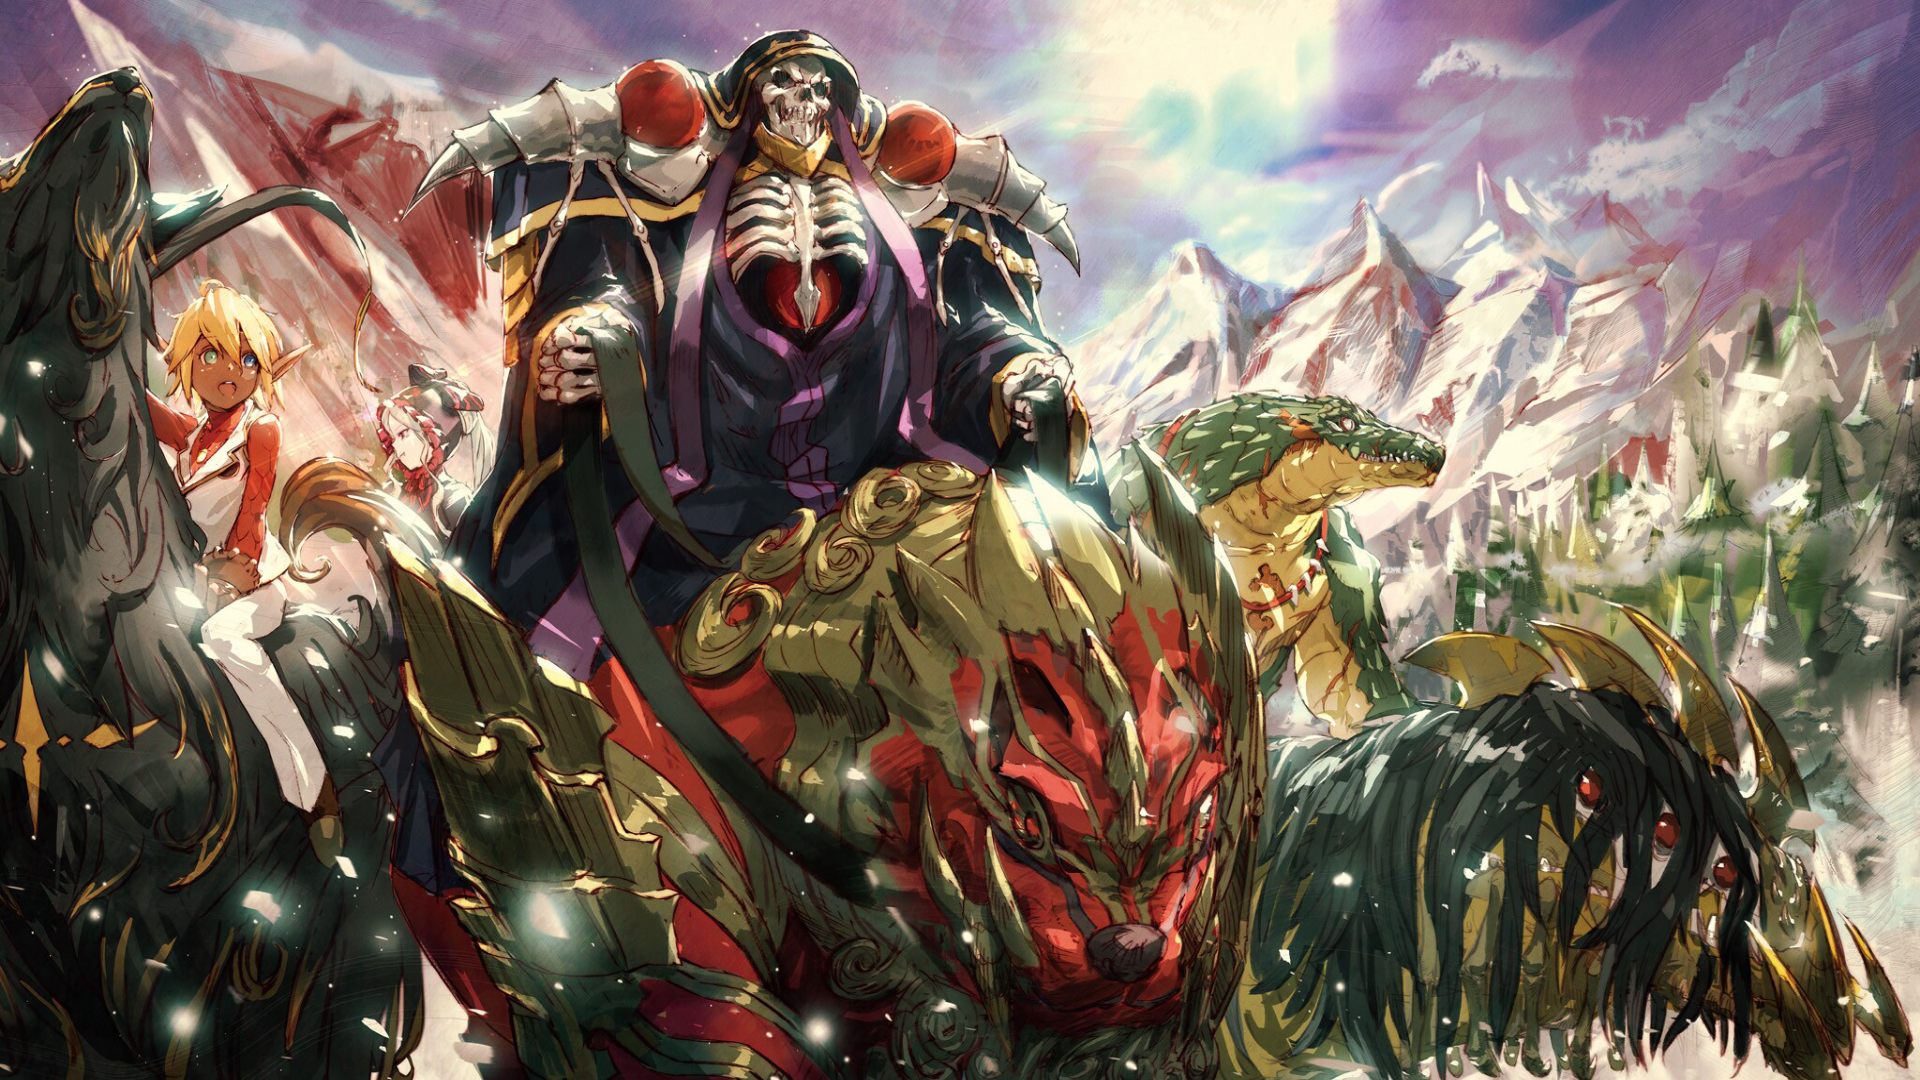 Glorious Lord Ainz Overlord 1920x1080 Need Trendy Iphone7 Iphone7plus Case Check Out Https Ift Tt 2itgto5 Indonesia